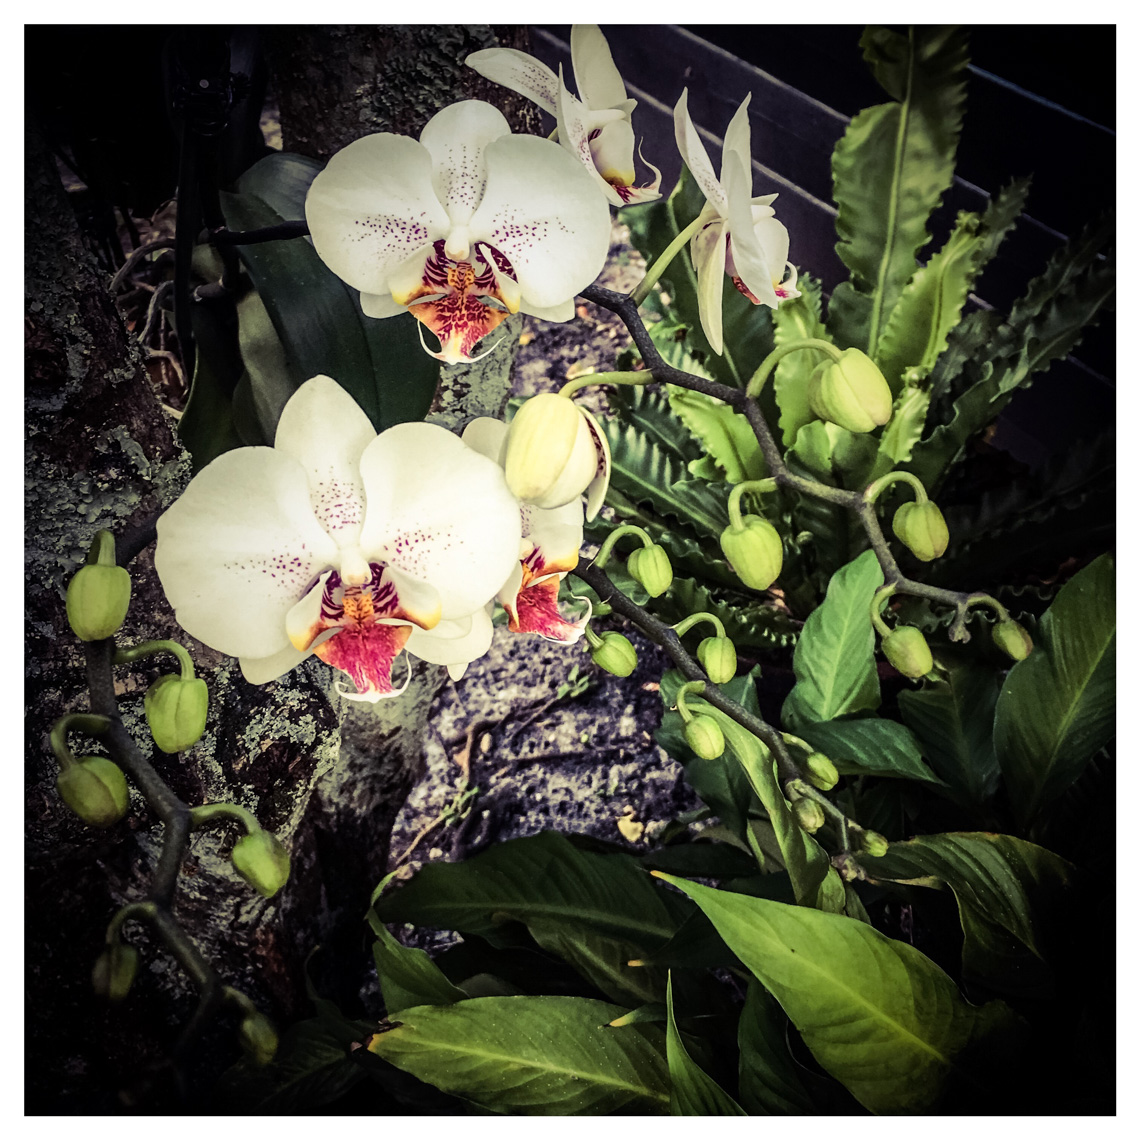 IphoneographyBotanical_002